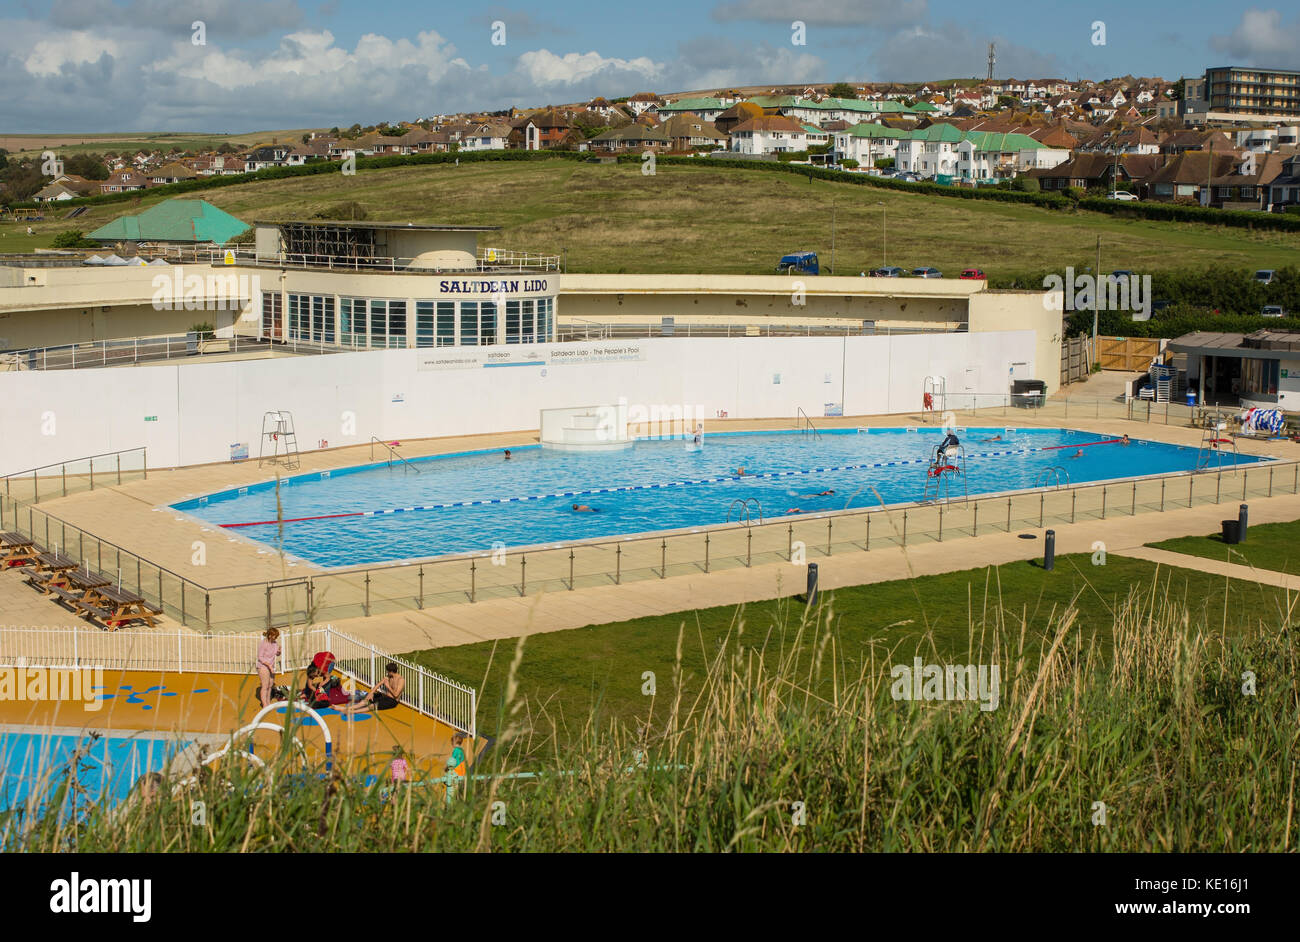 Good Newly Restored Art Deco Lido (Outdoor Swimming Pool) At Saltdean Near  Brighton, East Sussex, England. With People